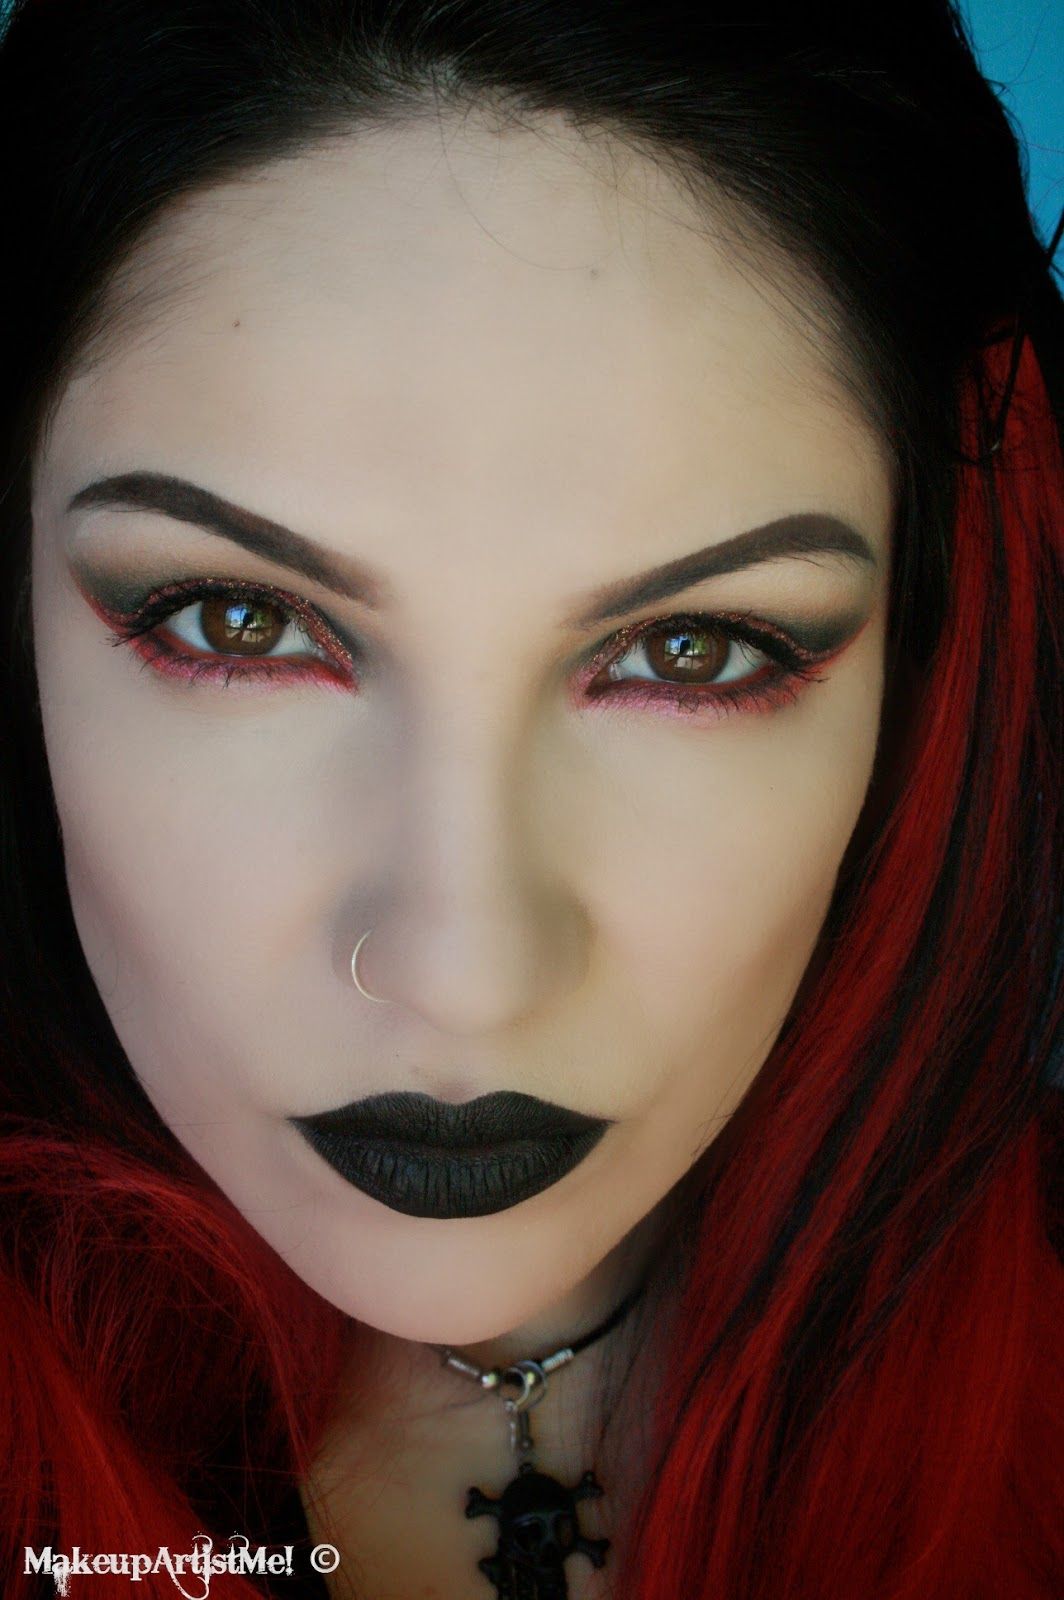 Make Up Fashion And 50 Shades Of Pink: Make-up Artist Me!: My Goth! Makeup Tutorial